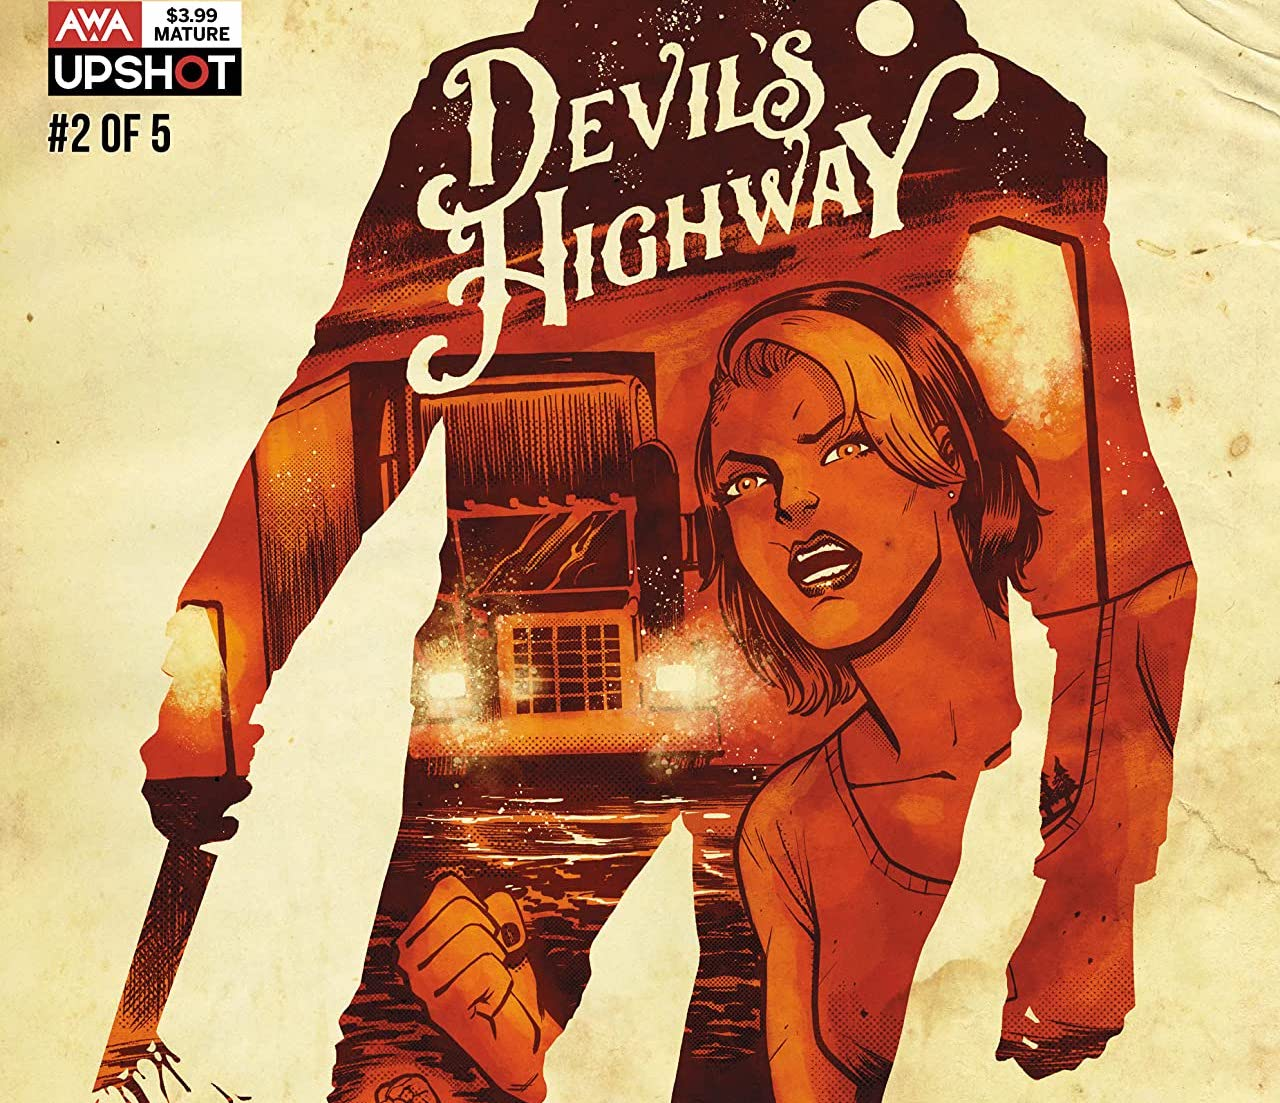 'Devil's Highway' #2 review: Chilling crime drama